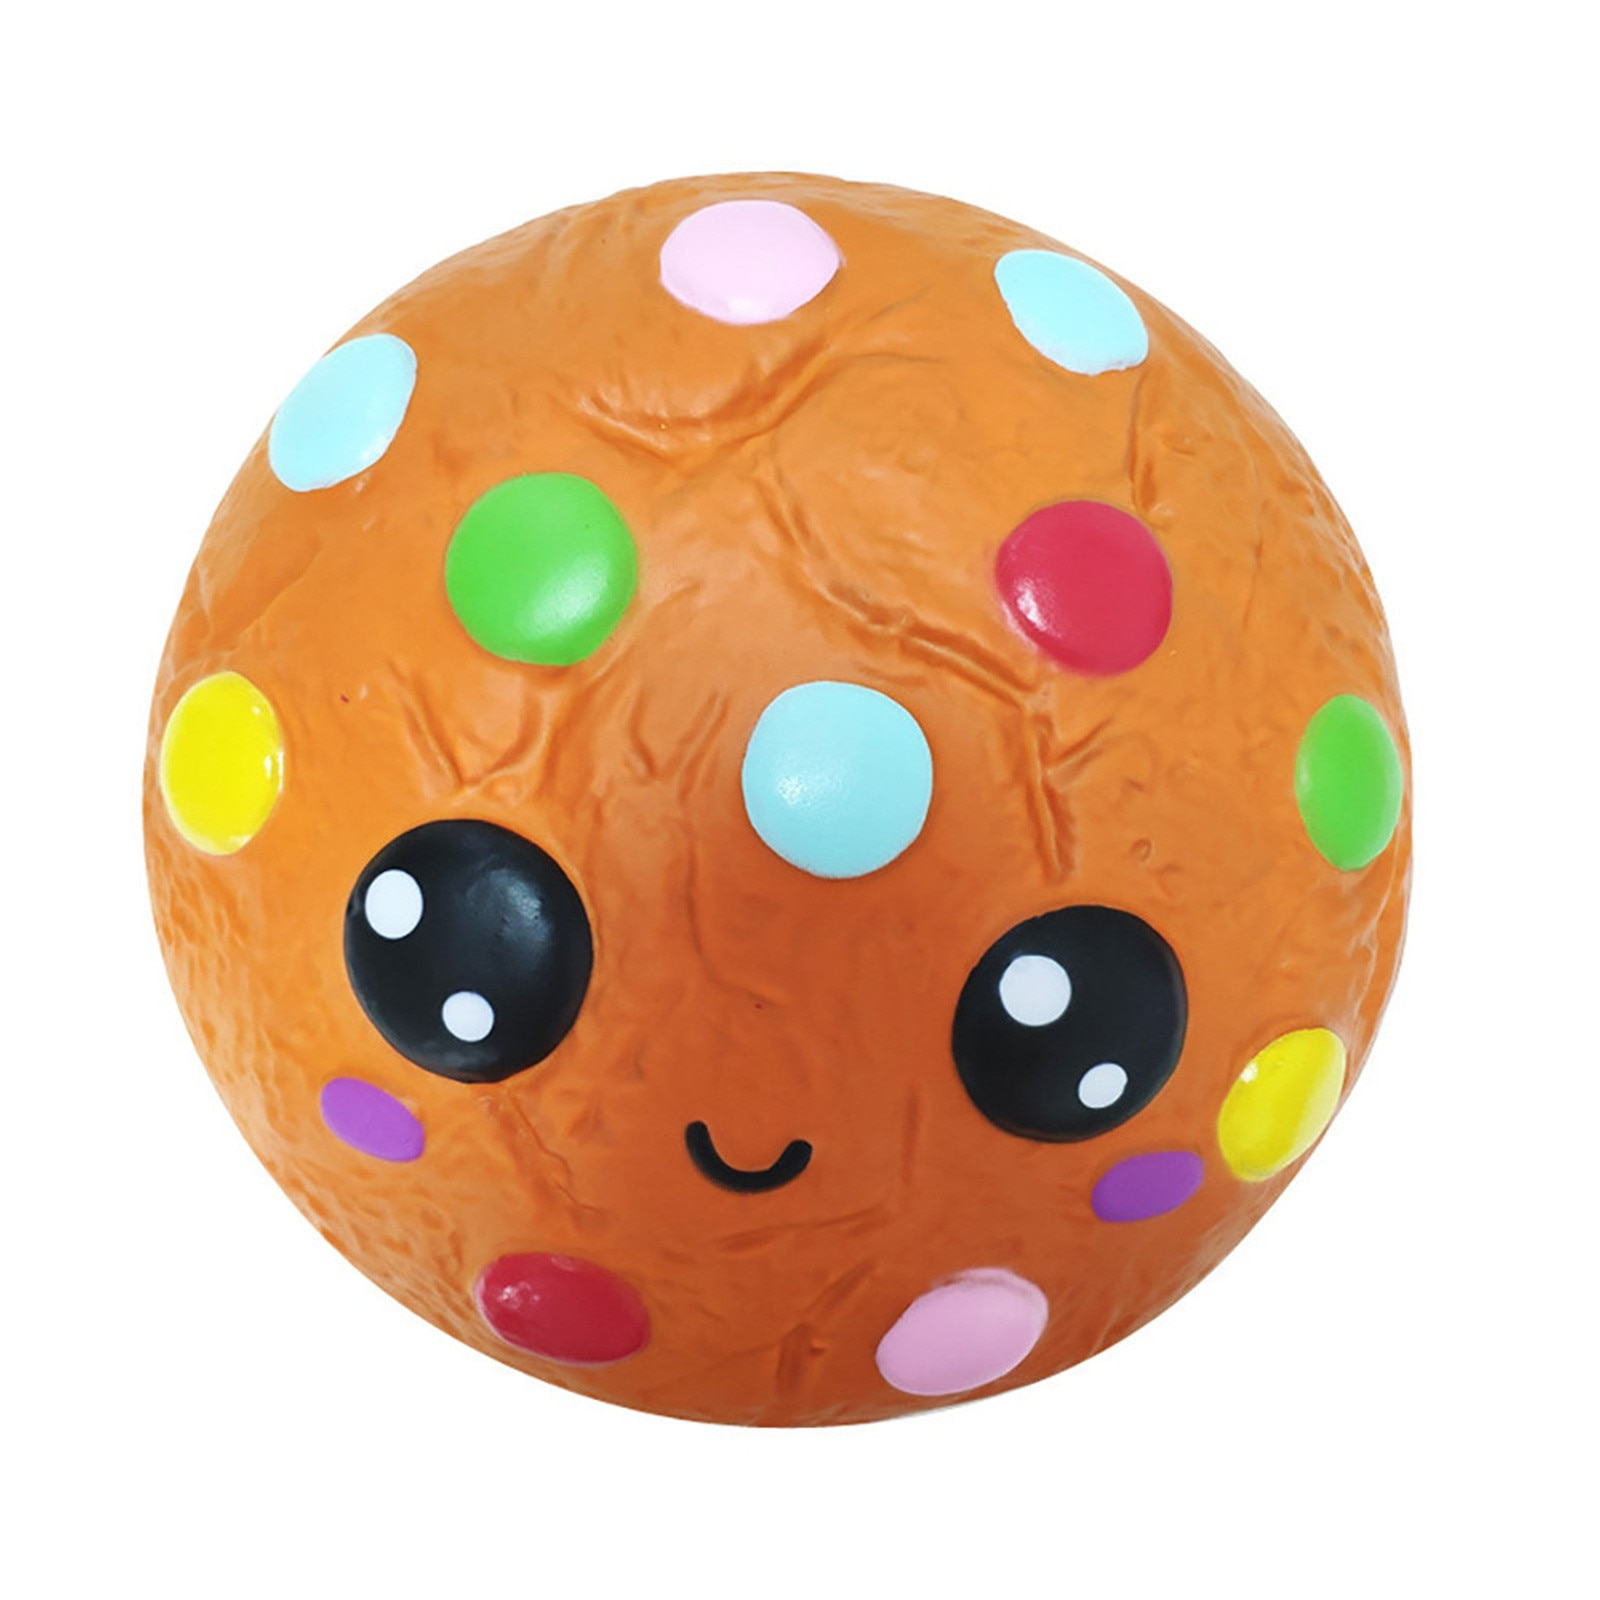 Fashion Jumbo Chocolates Biscuits Scented Kawaii Cartoon Fidget Toys Slow Rising Stress Reliever Toy Squishy Antistress Children enlarge